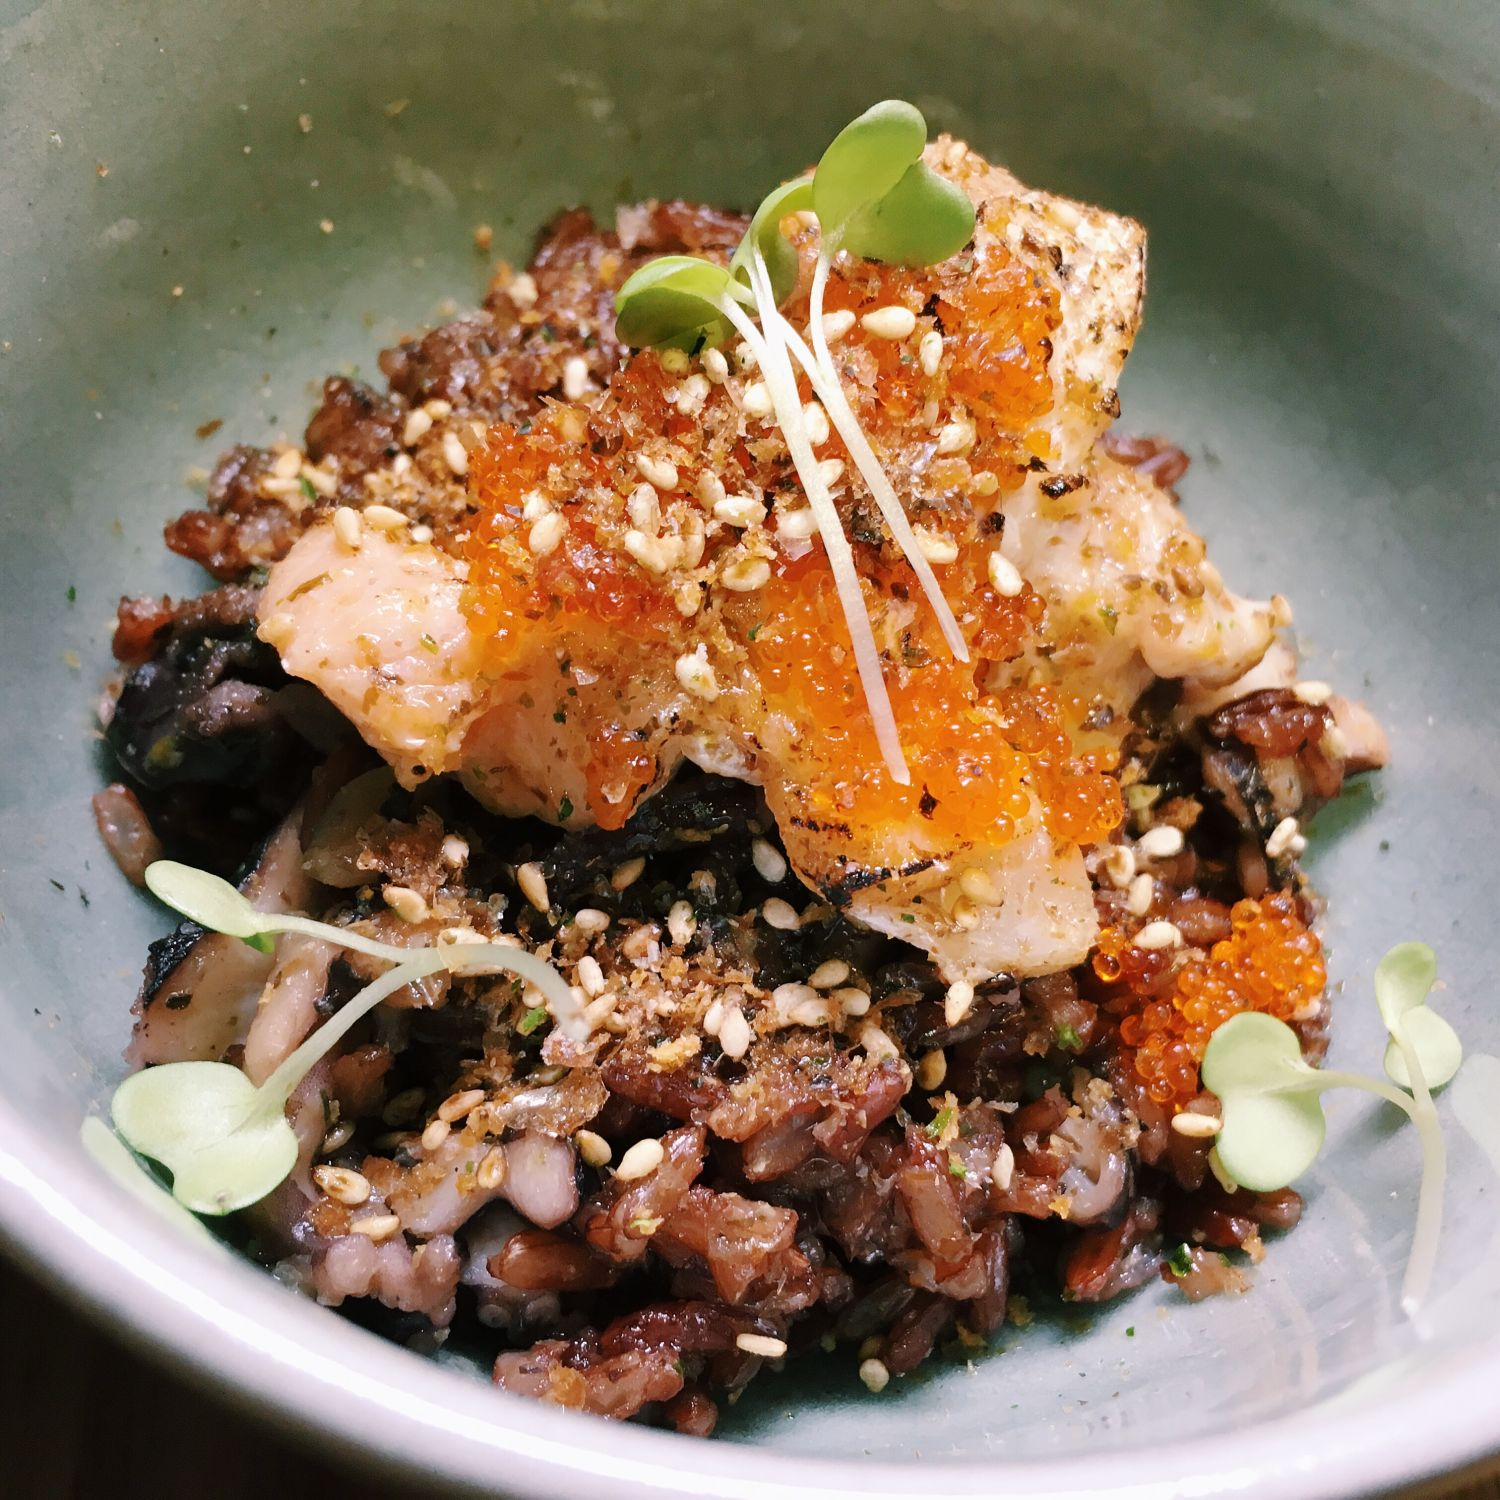 Salmon Red Rice and Baby Octopus Donburi - Wild Rocket